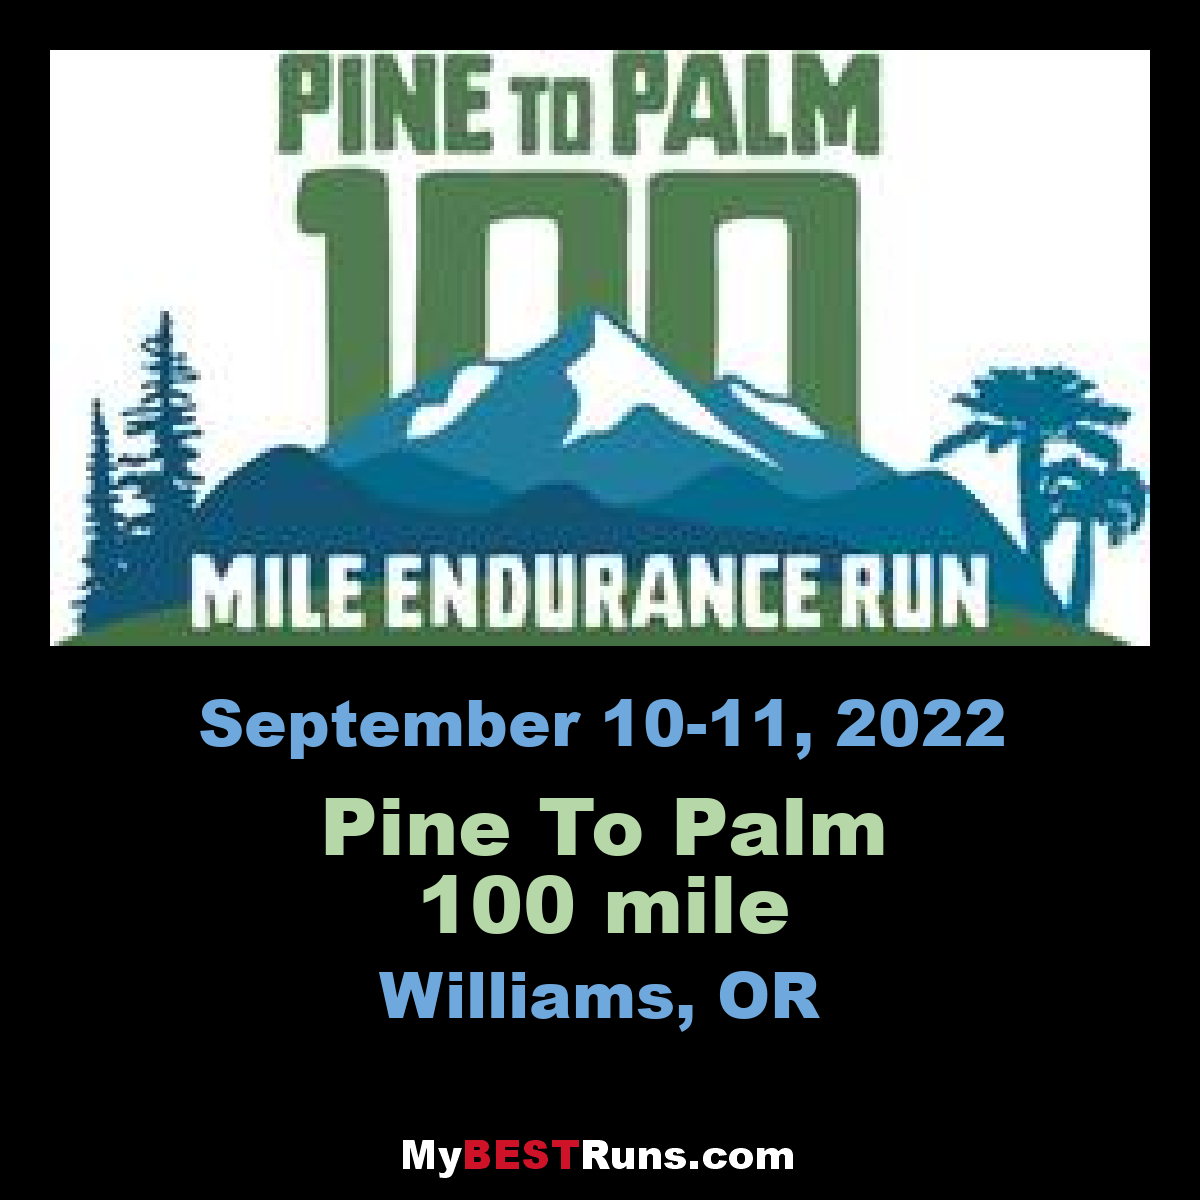 Pine To Palm 100 mile